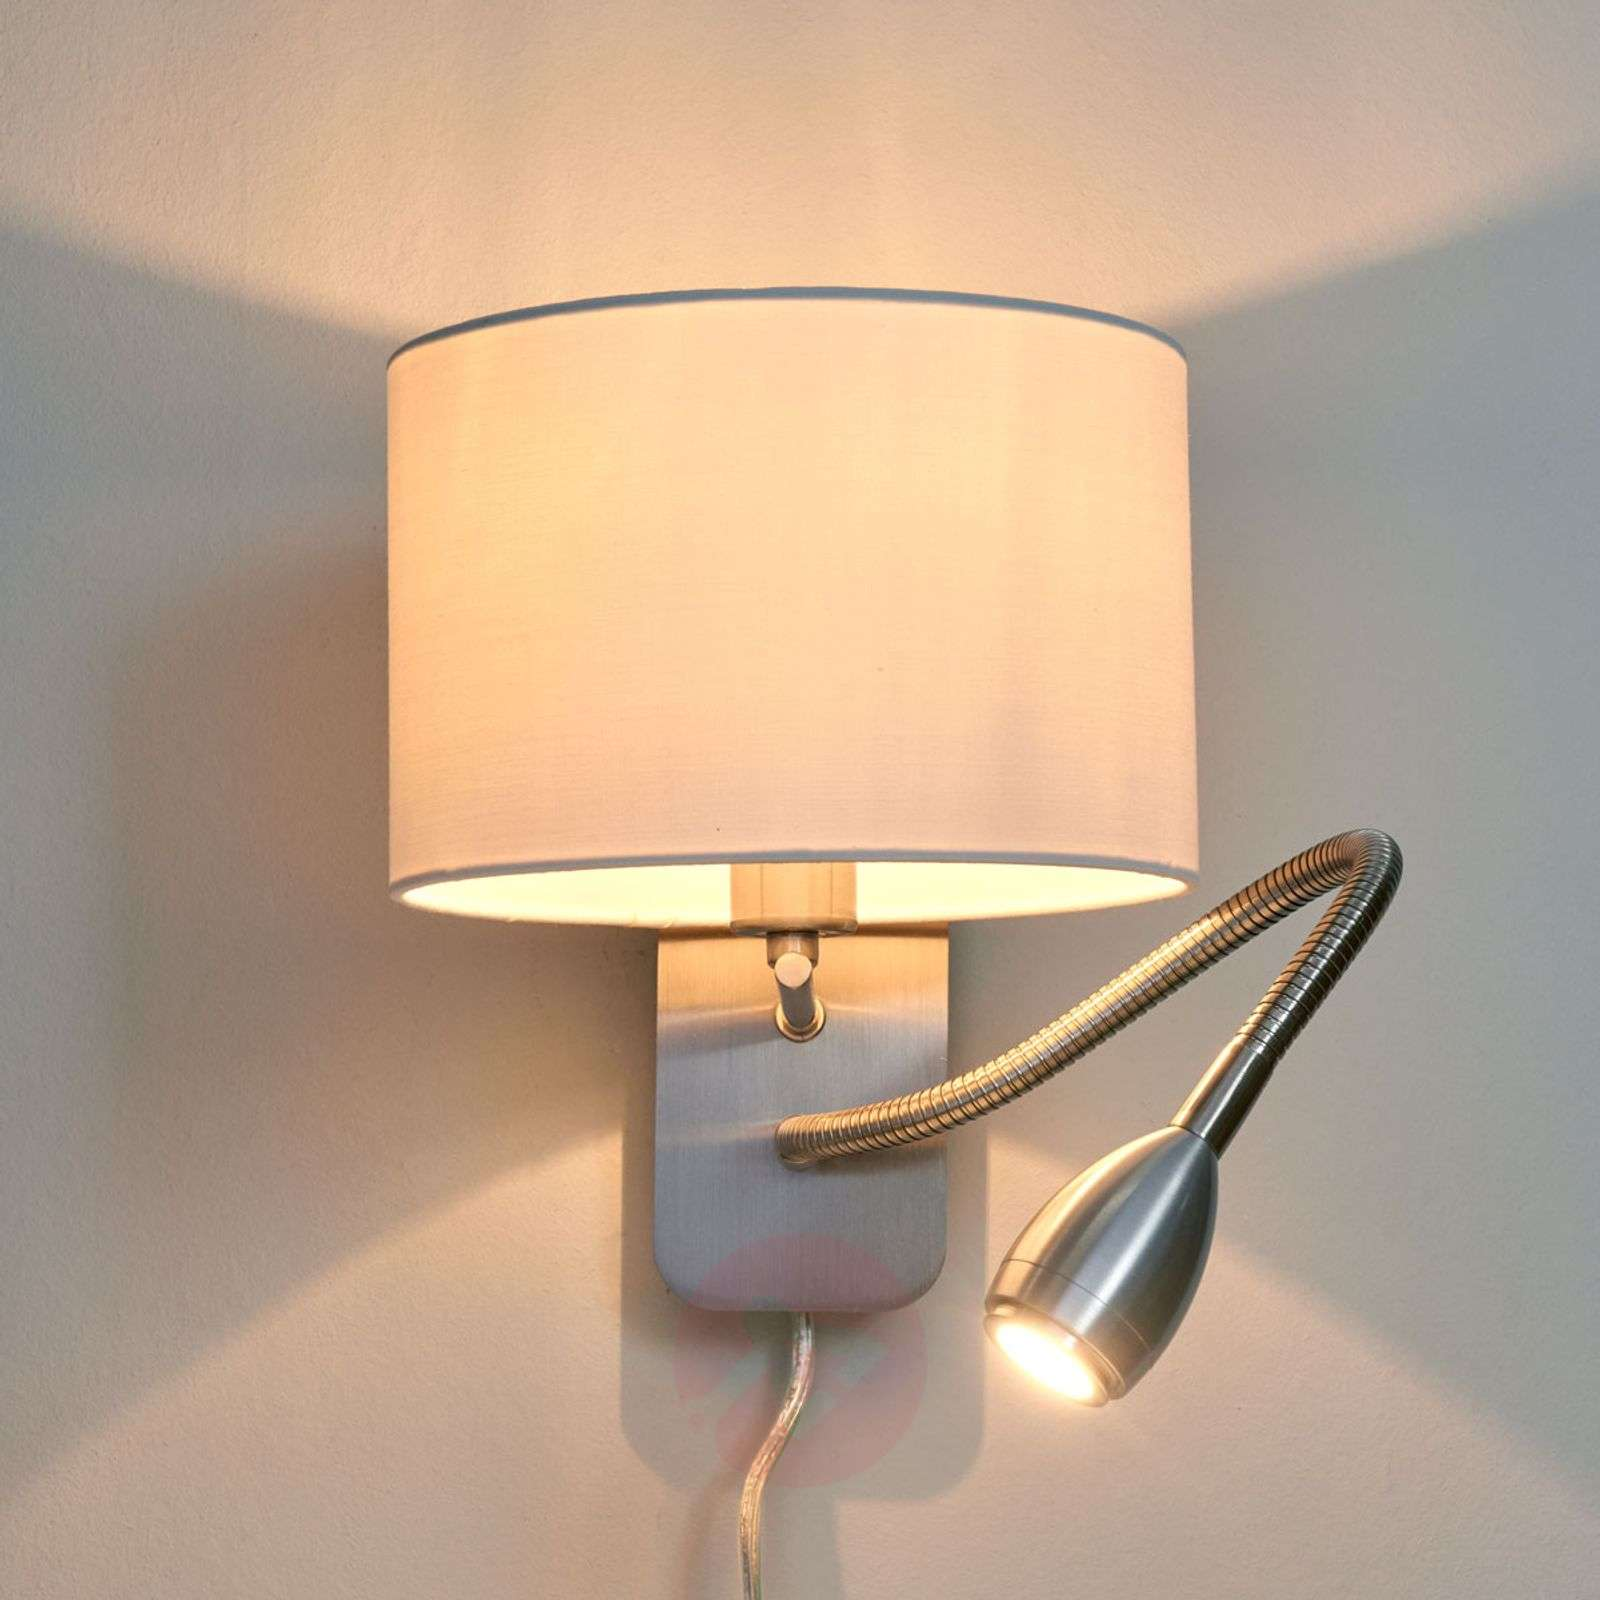 Risa wall light with reading light-9004558-01